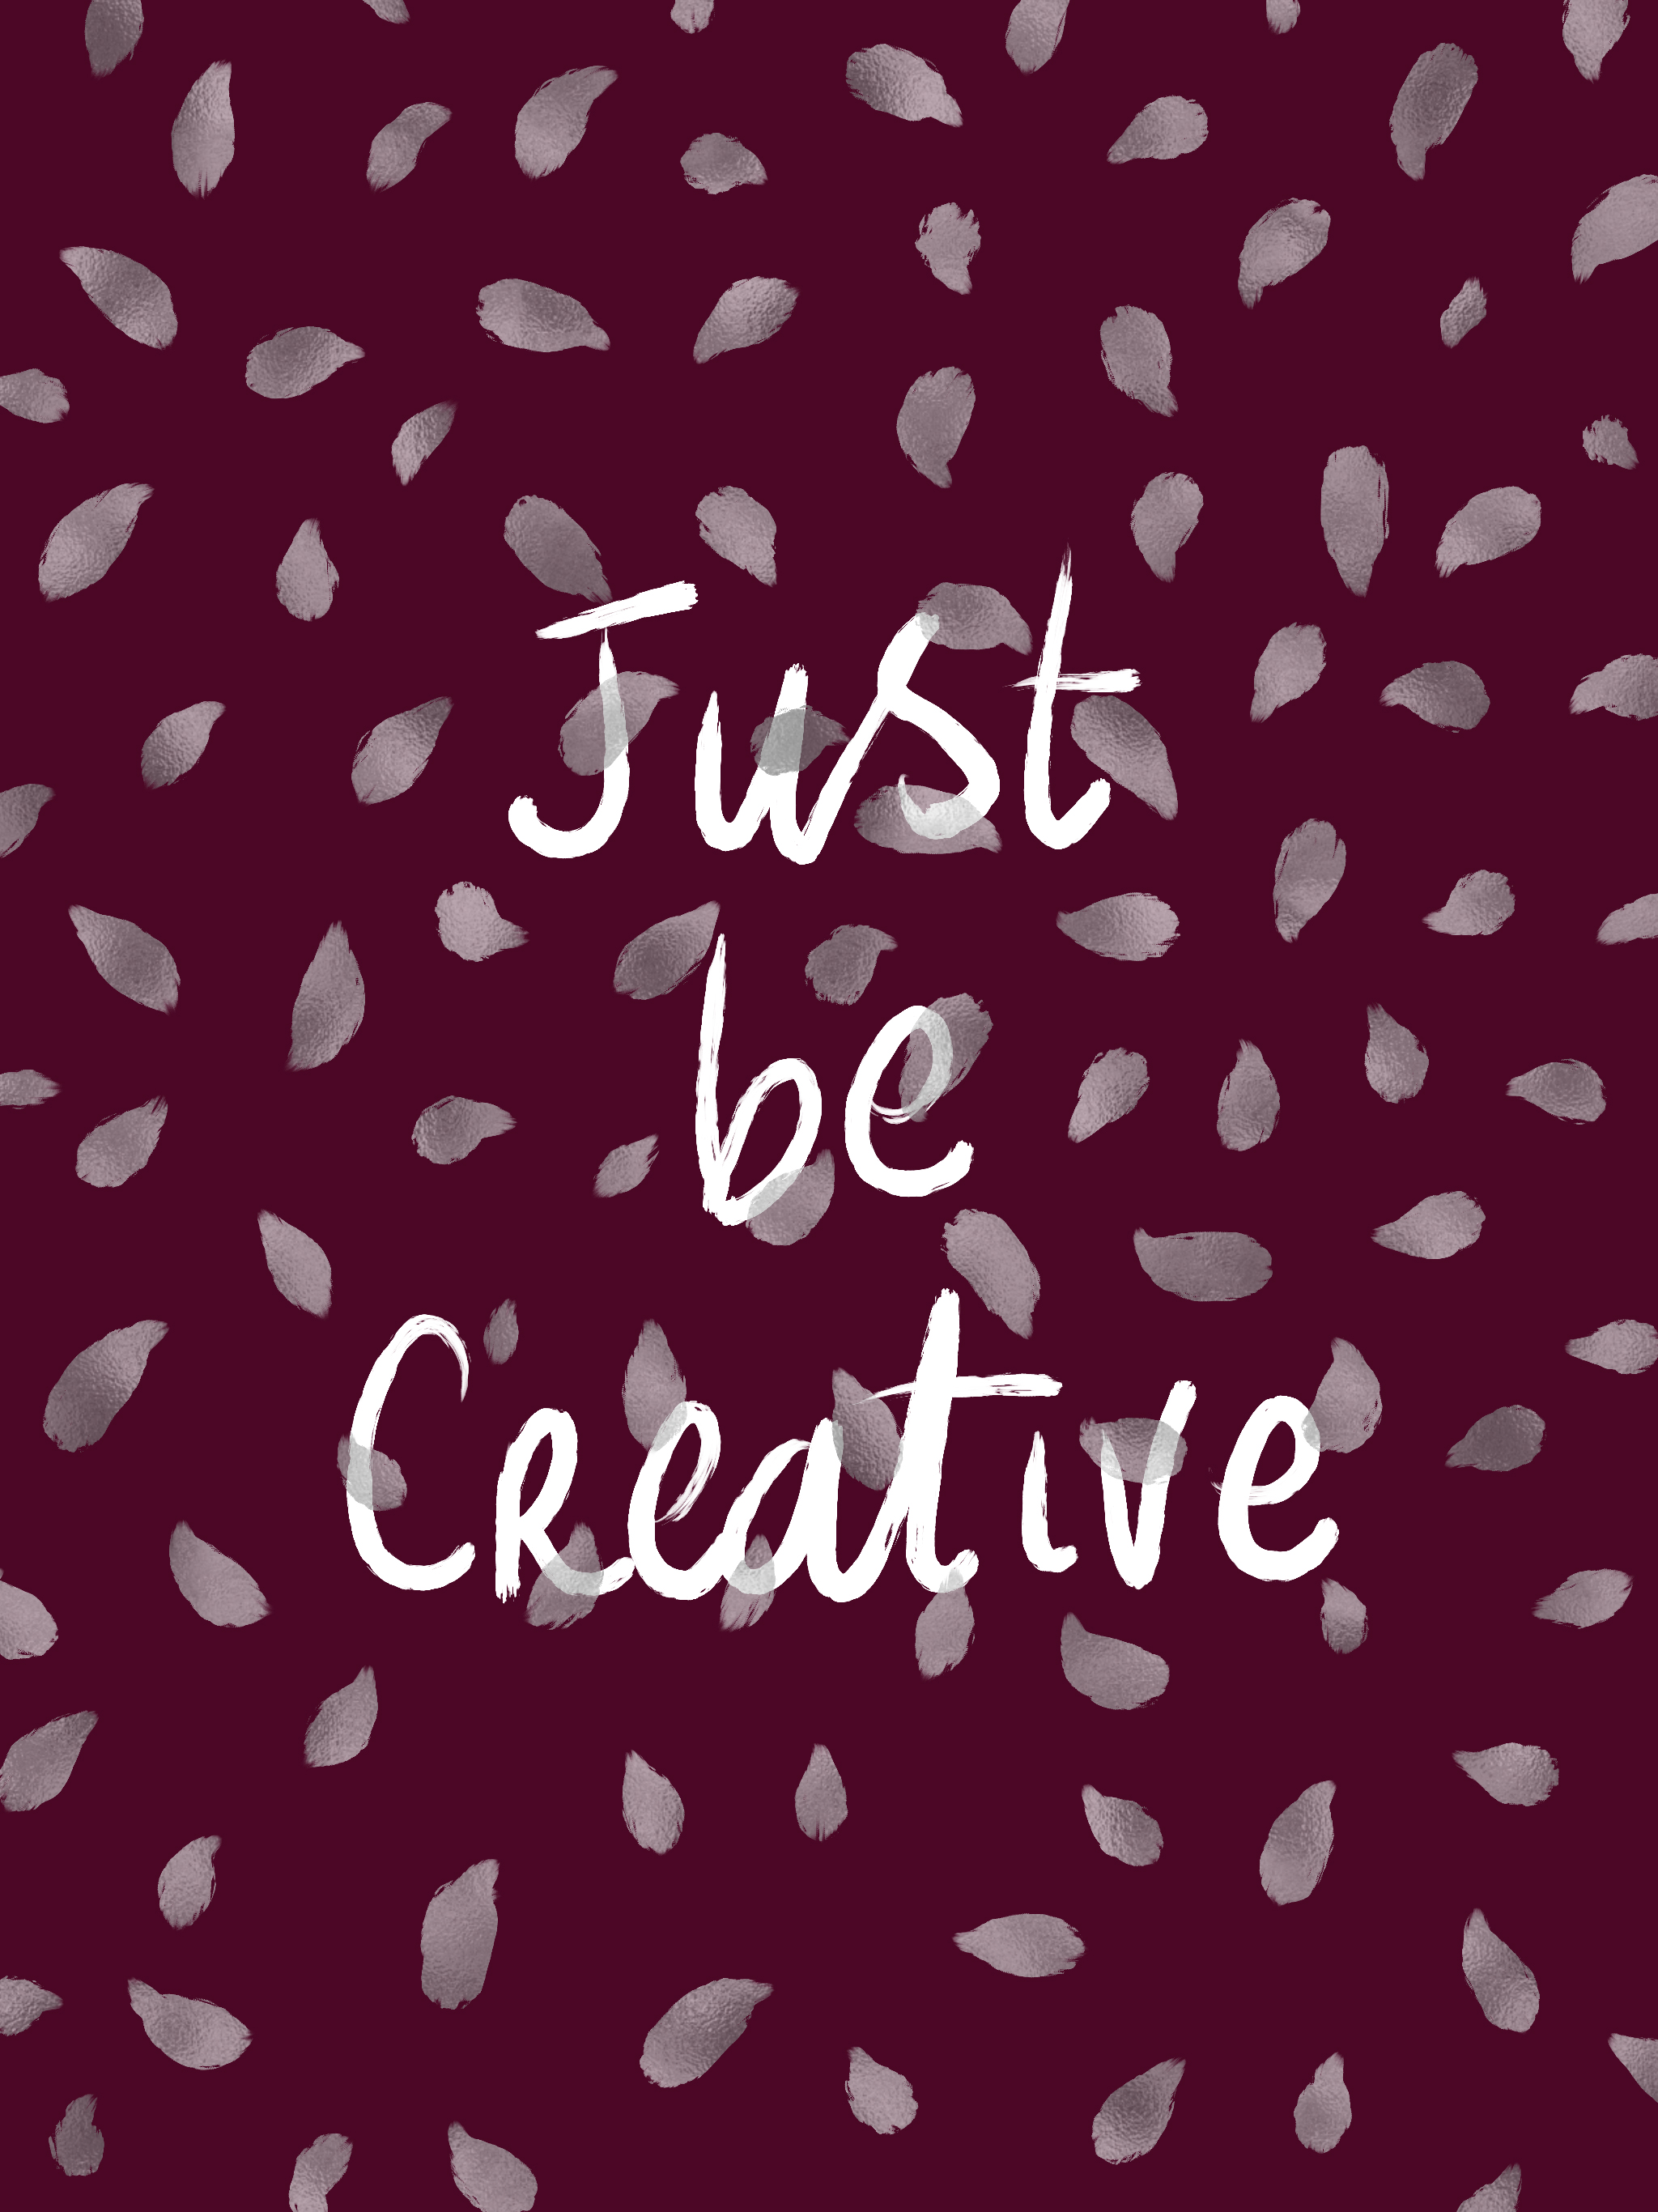 just be creative / www.leysafloresdesign.com.au